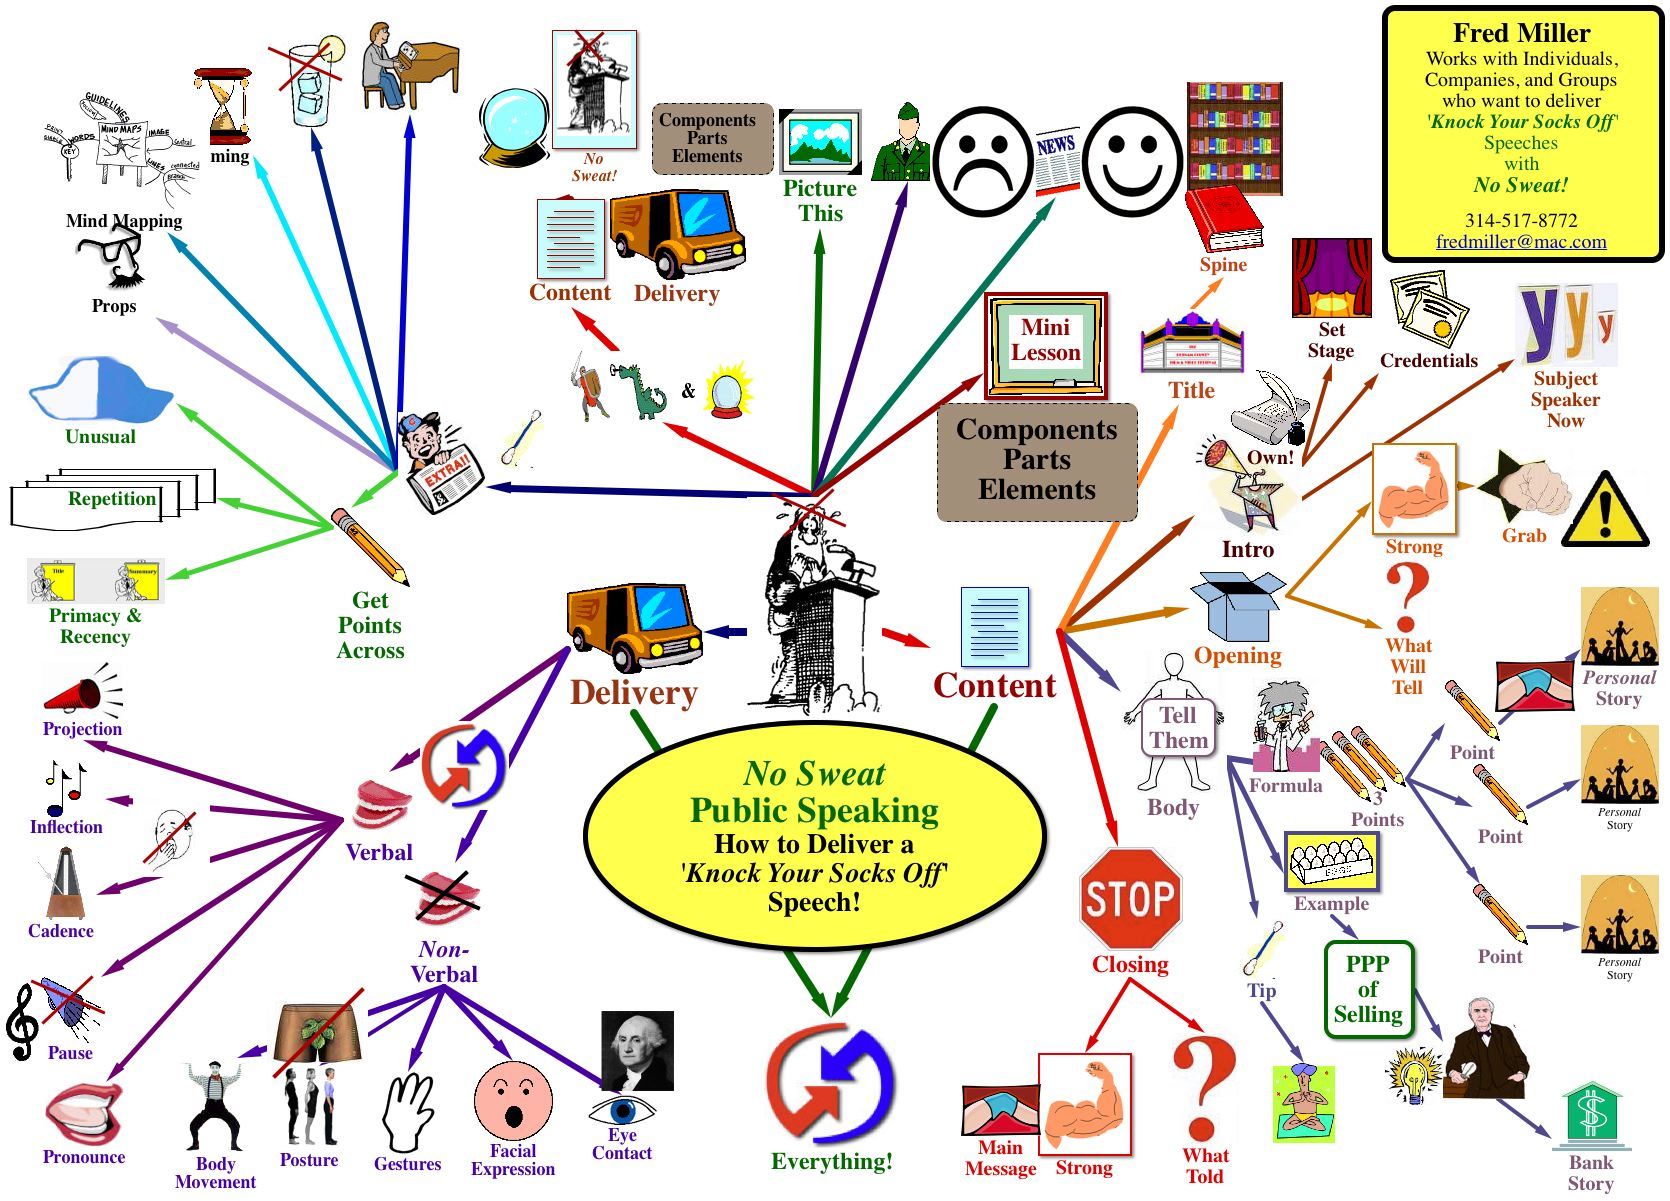 Mind Map For No Sweat Public Speaking